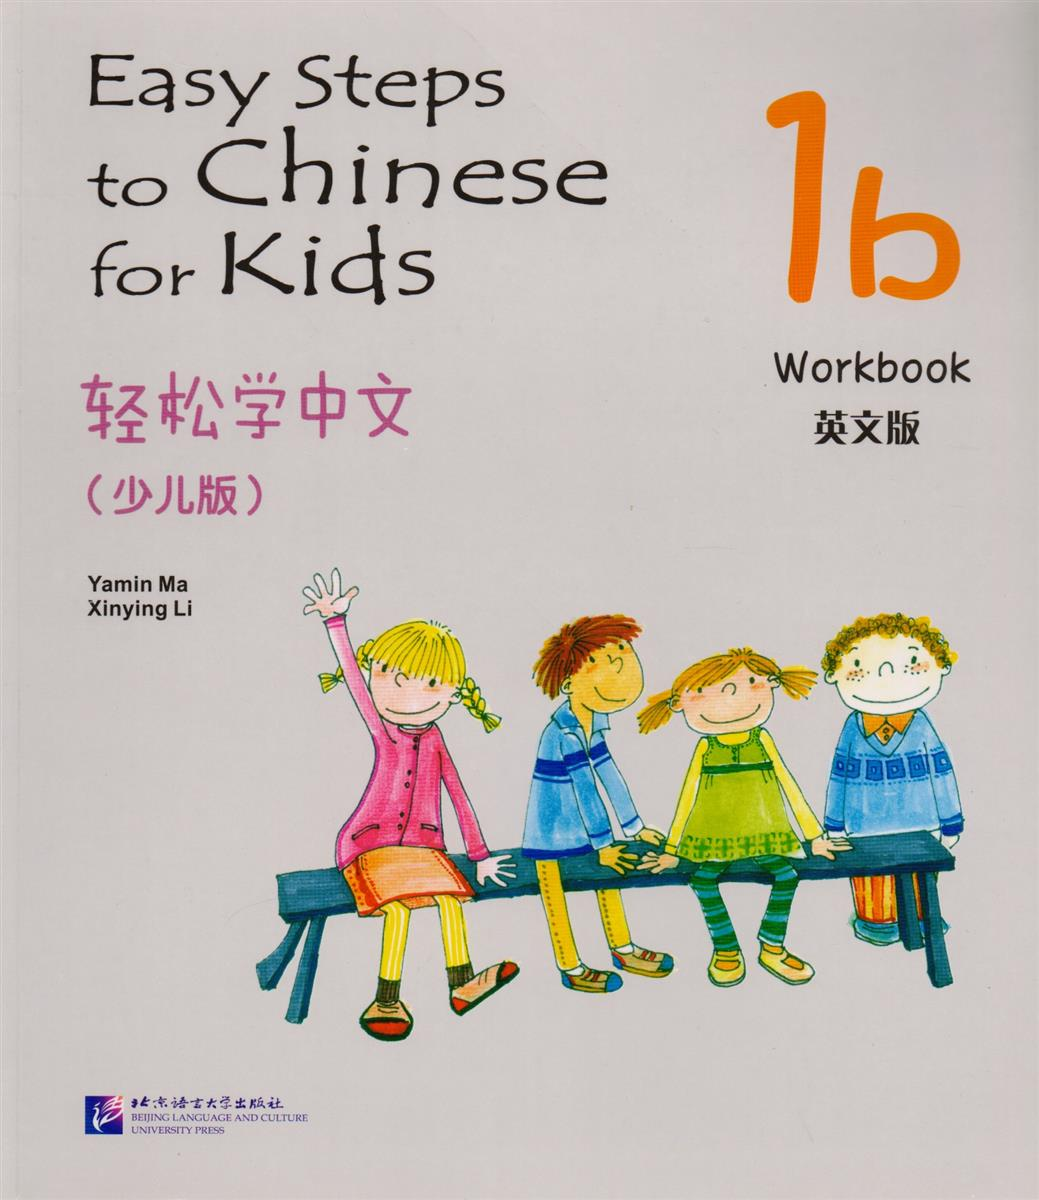 Yamin Ma Easy Steps to Chinese for kids 1B - WB / Легкие Шаги к Китайскому для детей. Часть 1B - Рабочая тетрадь (на китайском и английском языках) forsining gold hollow automatic mechanical watches men luxury brand steel vintage skeleton watch clock relogio masculino hodinky